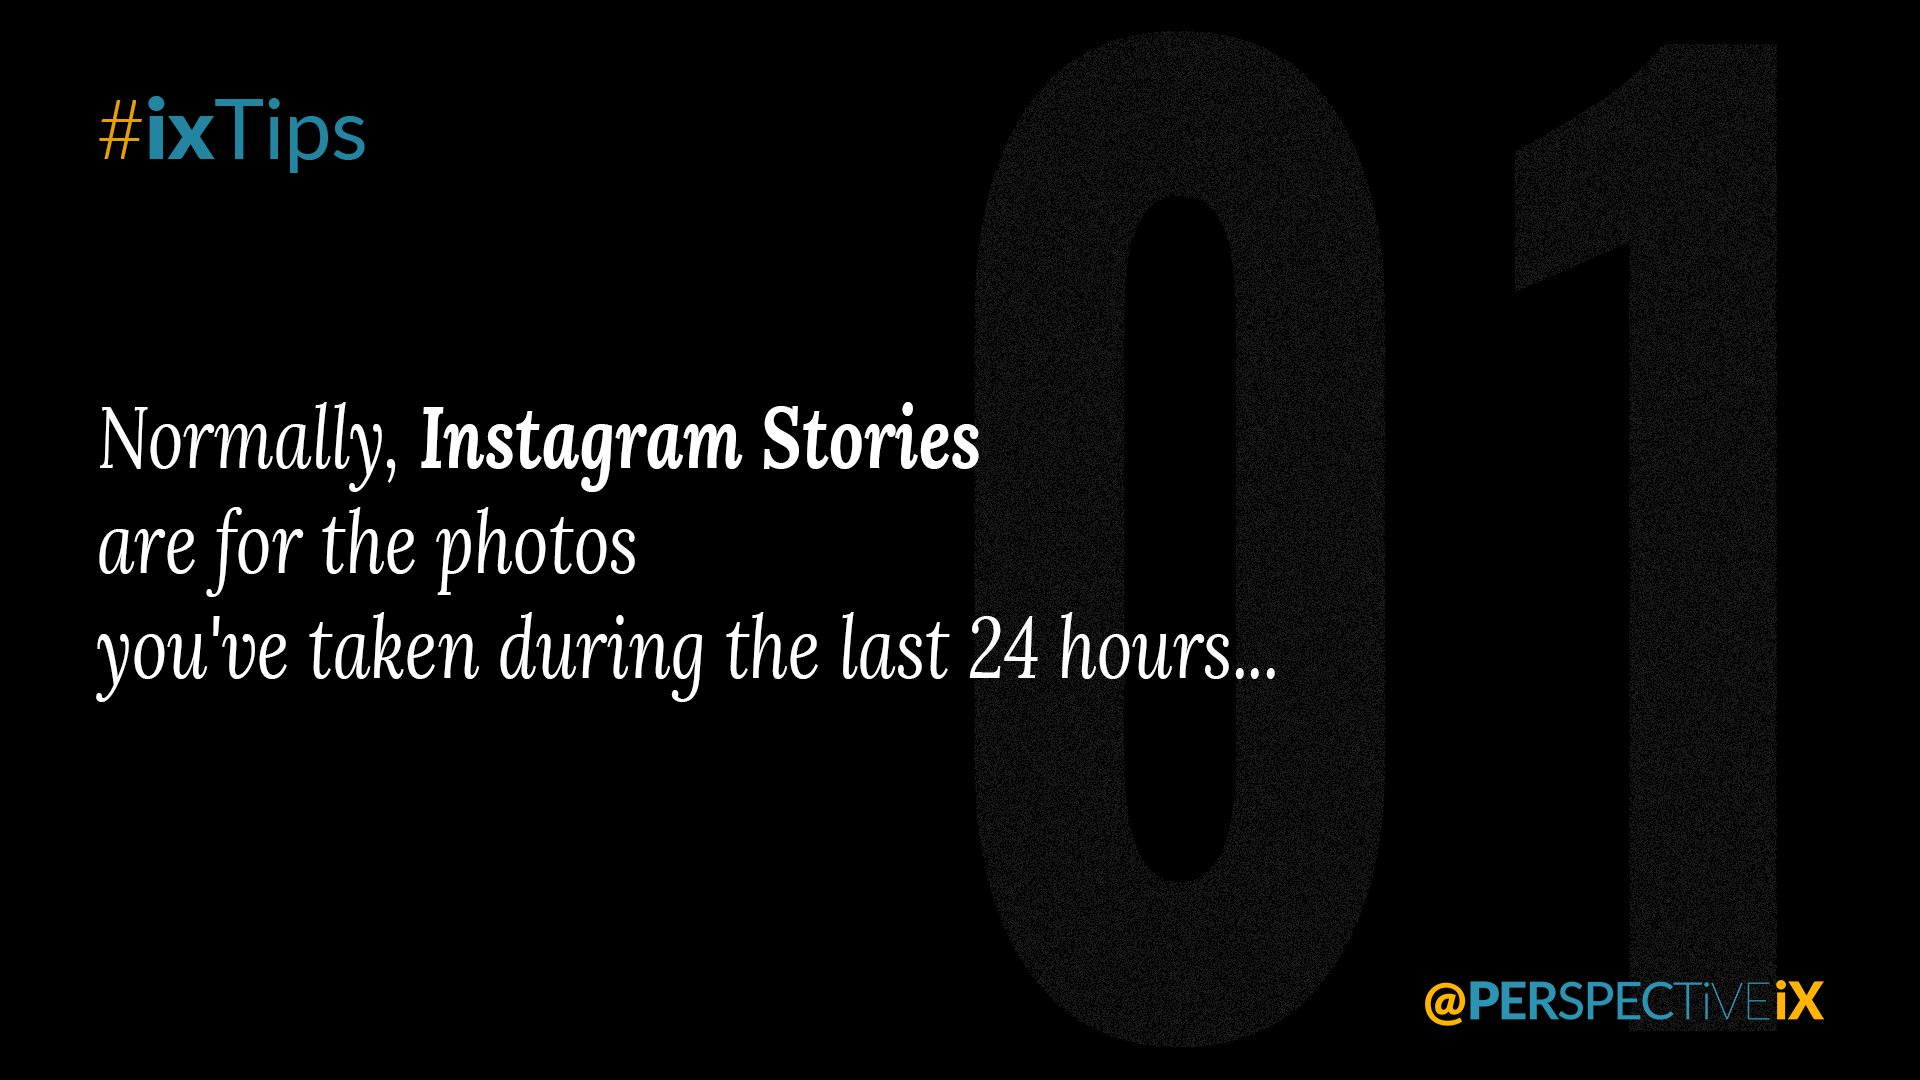 iX Tips 01 - Old Photos on Instagram Stories 1.png